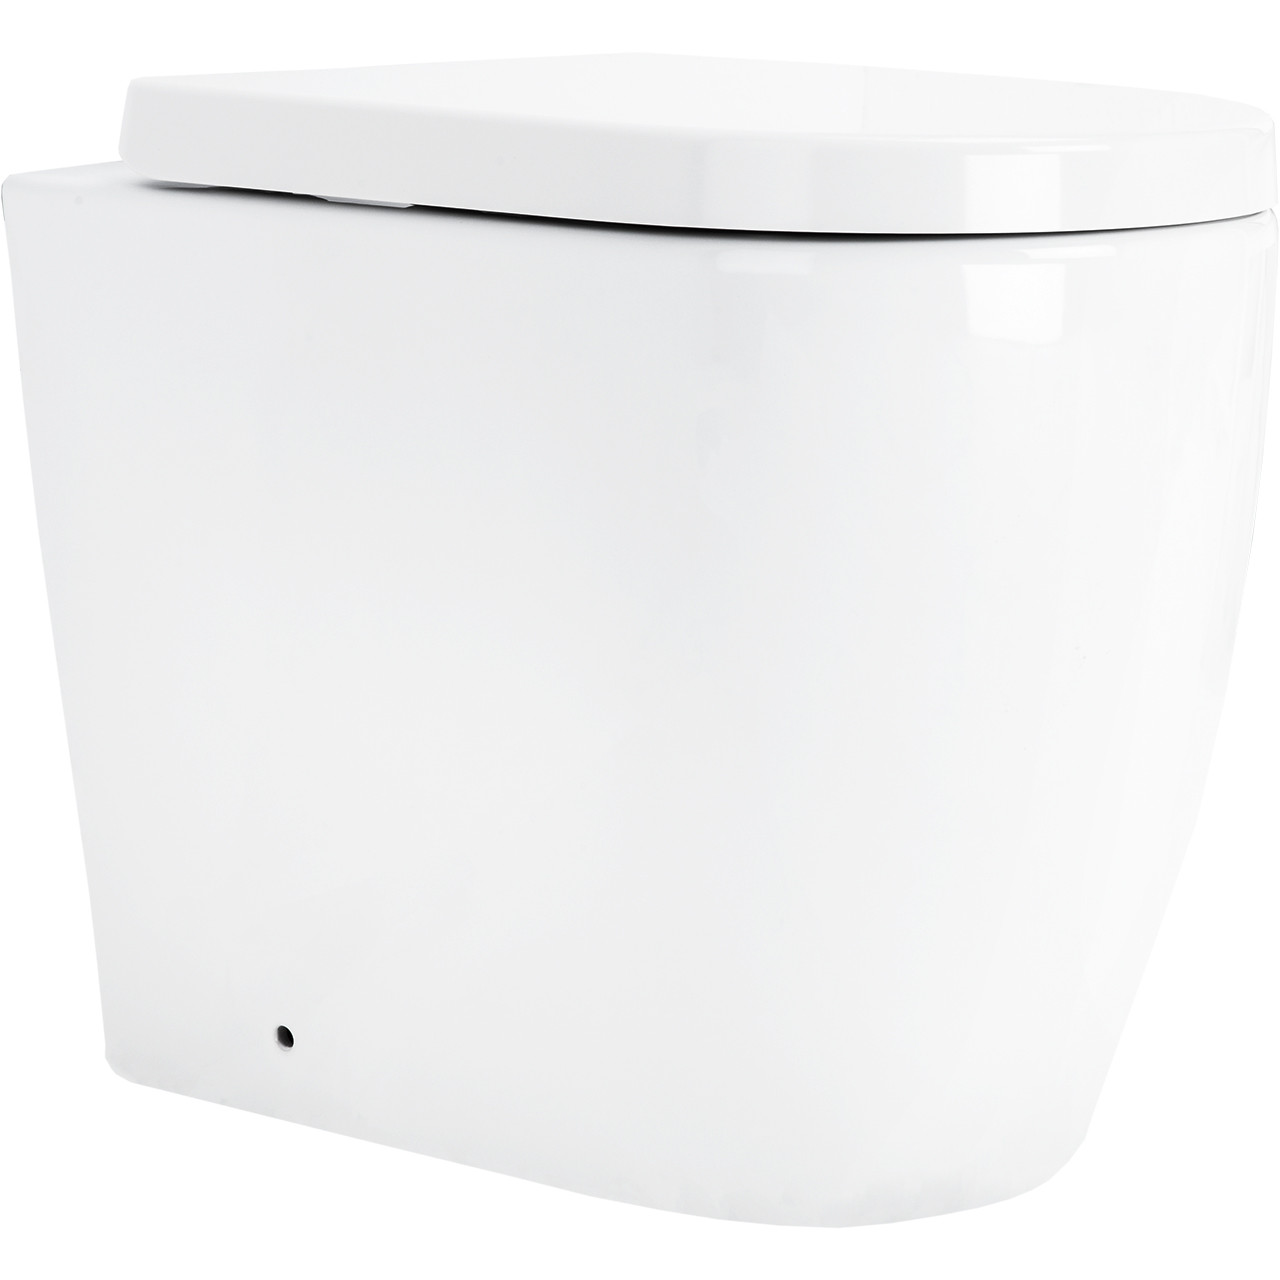 Stamford Back to Wall Toilet with Soft Close Seat Side